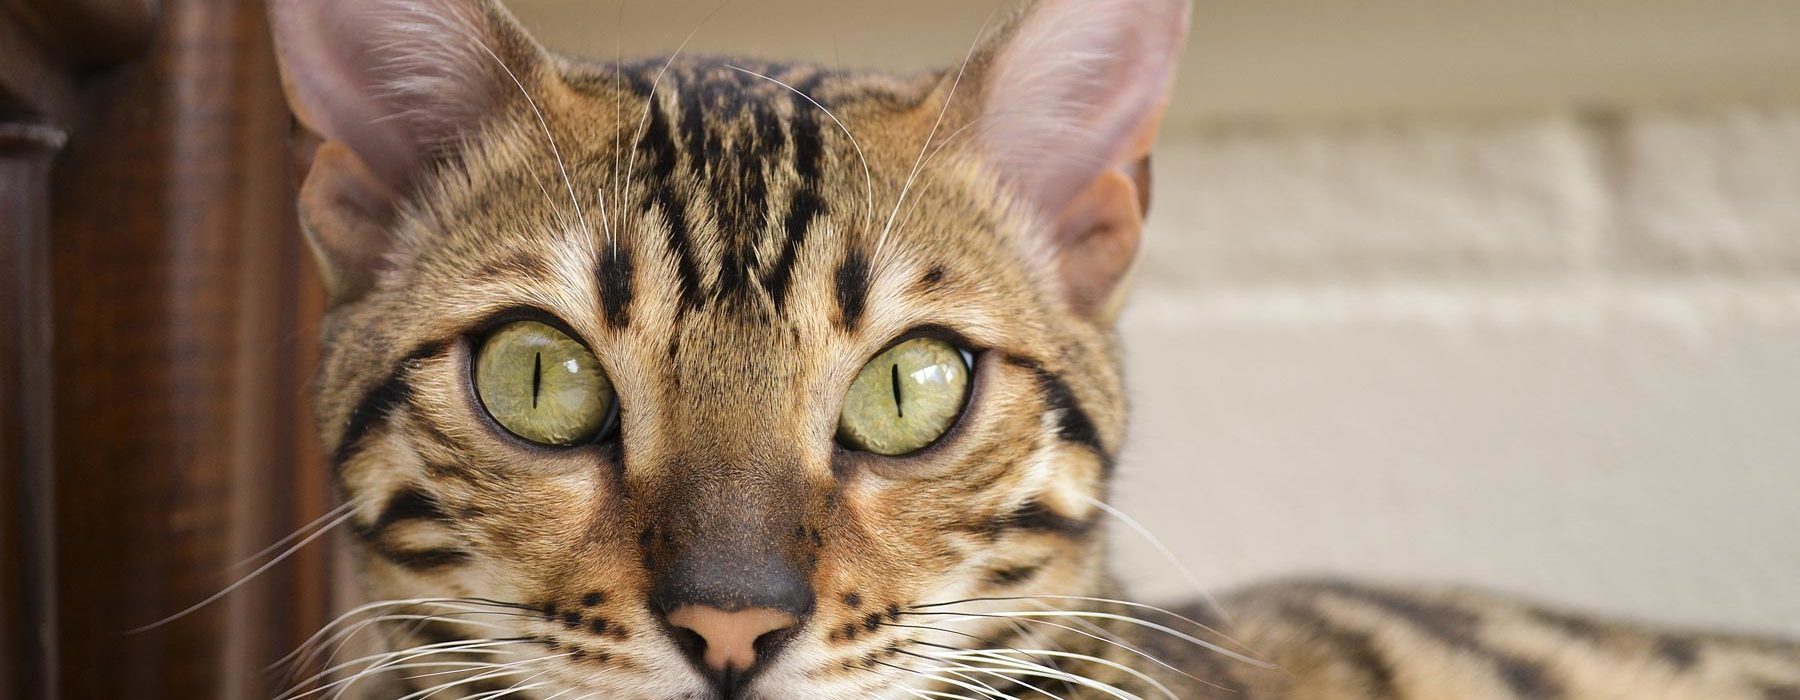 Bengal Cat Price Guide - How Much Do Bengals Really Cost?